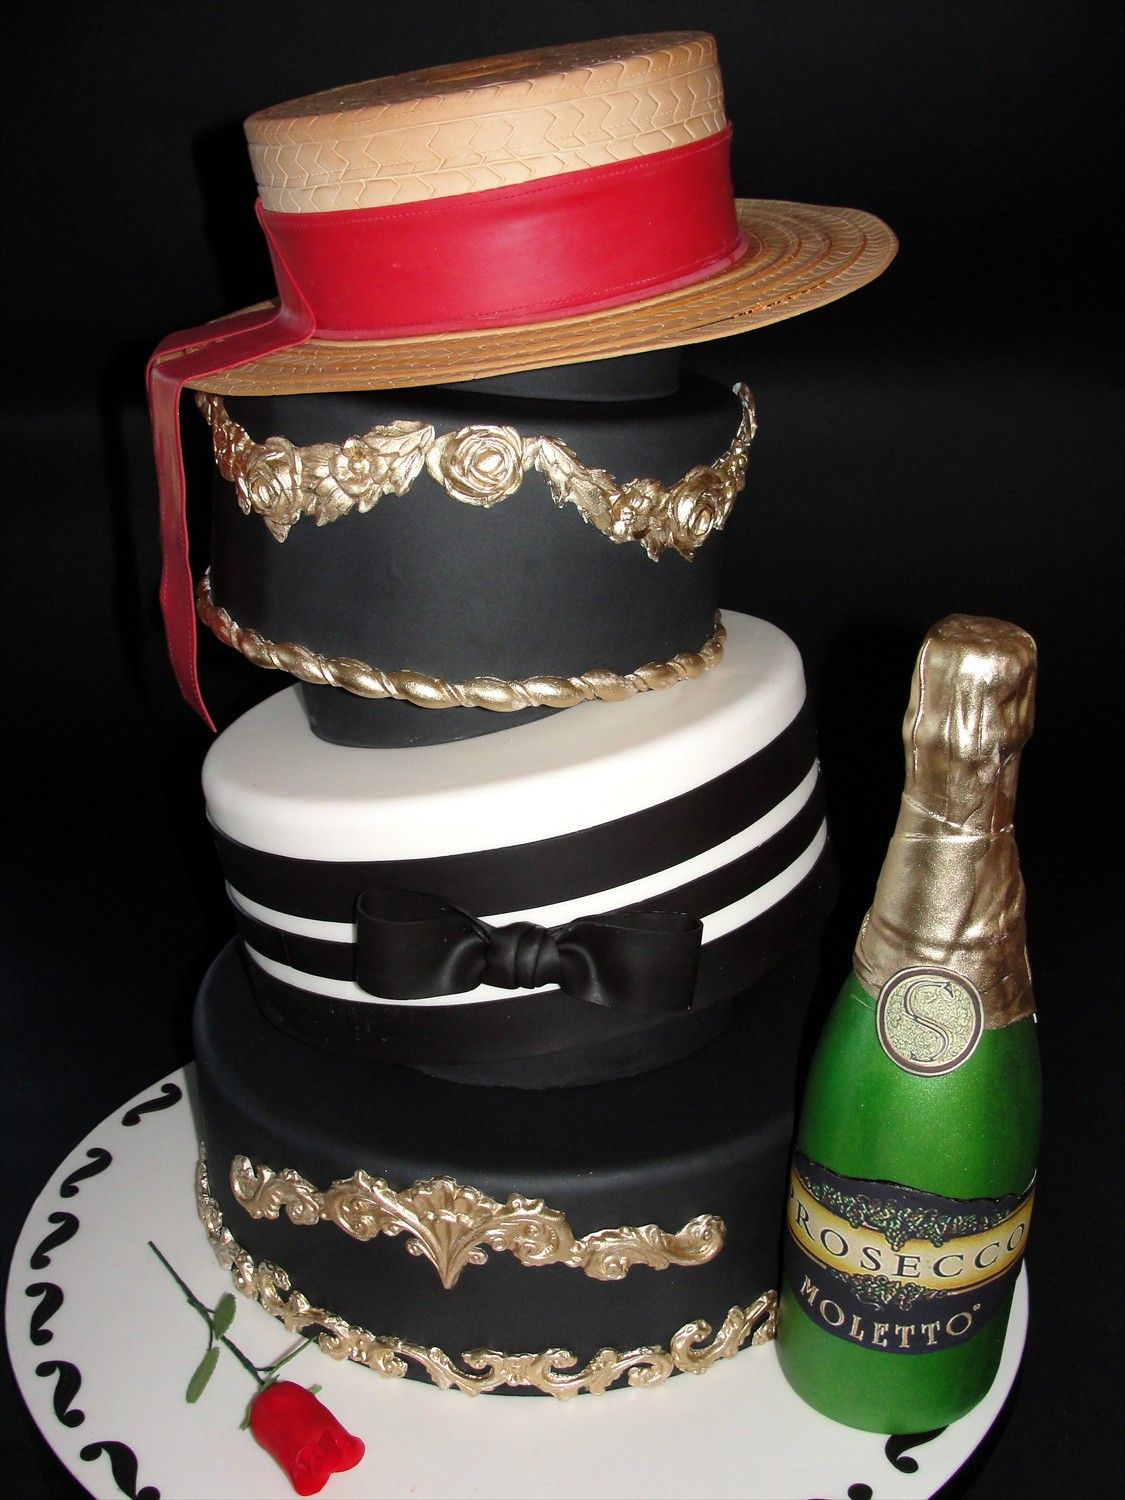 Gondolier themed cake possibly something to incorporate